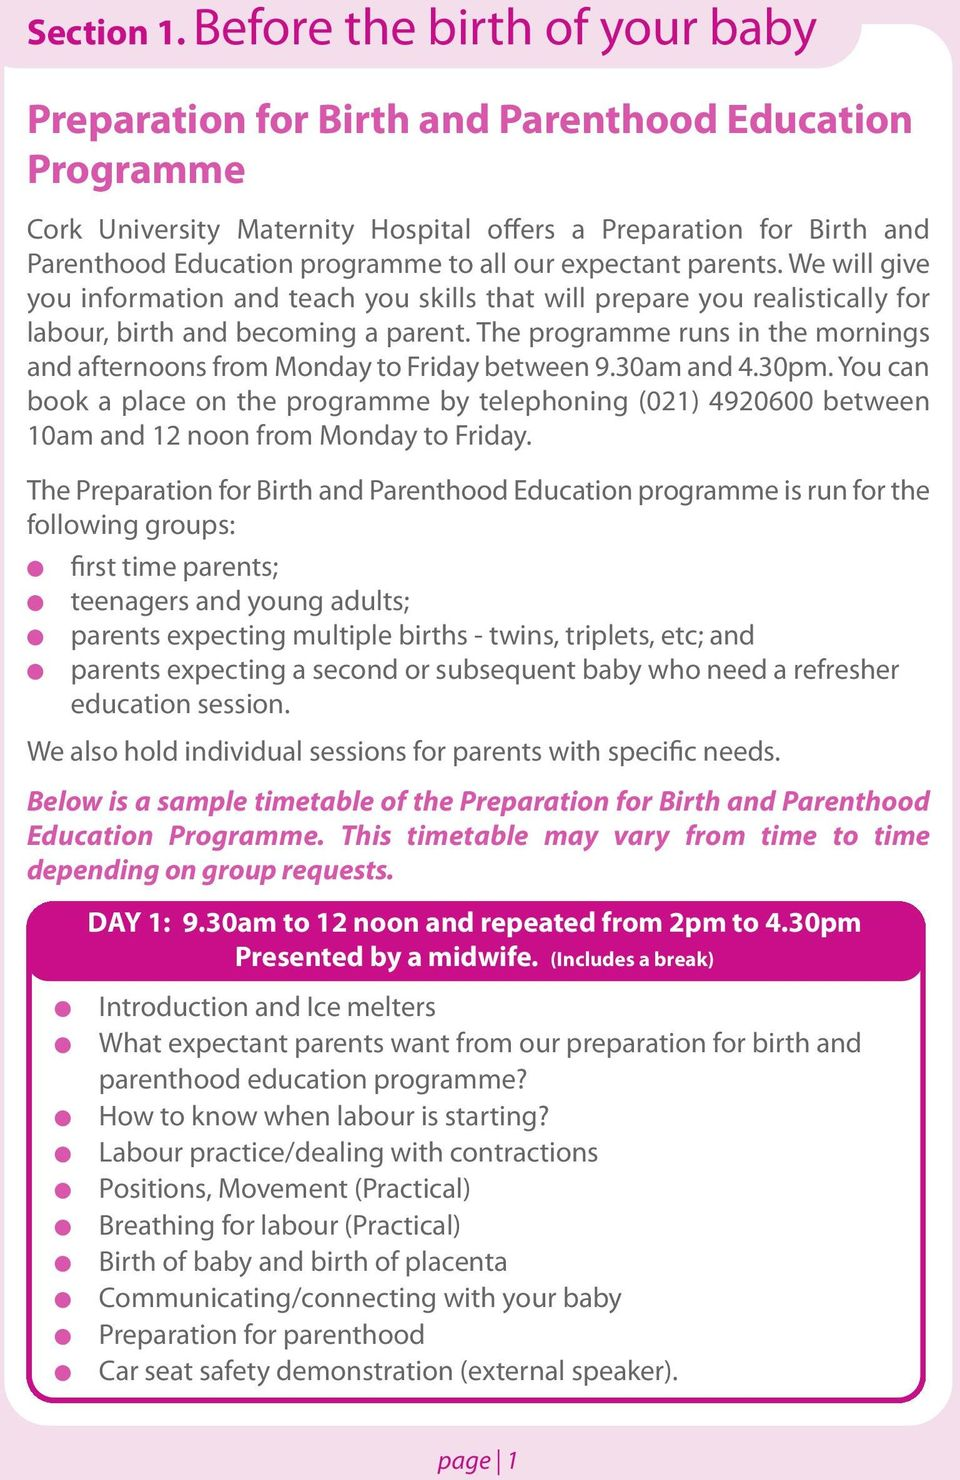 expectant parents. We wi give you information and teach you skis that wi prepare you reaisticay for abour, birth and becoming a parent.